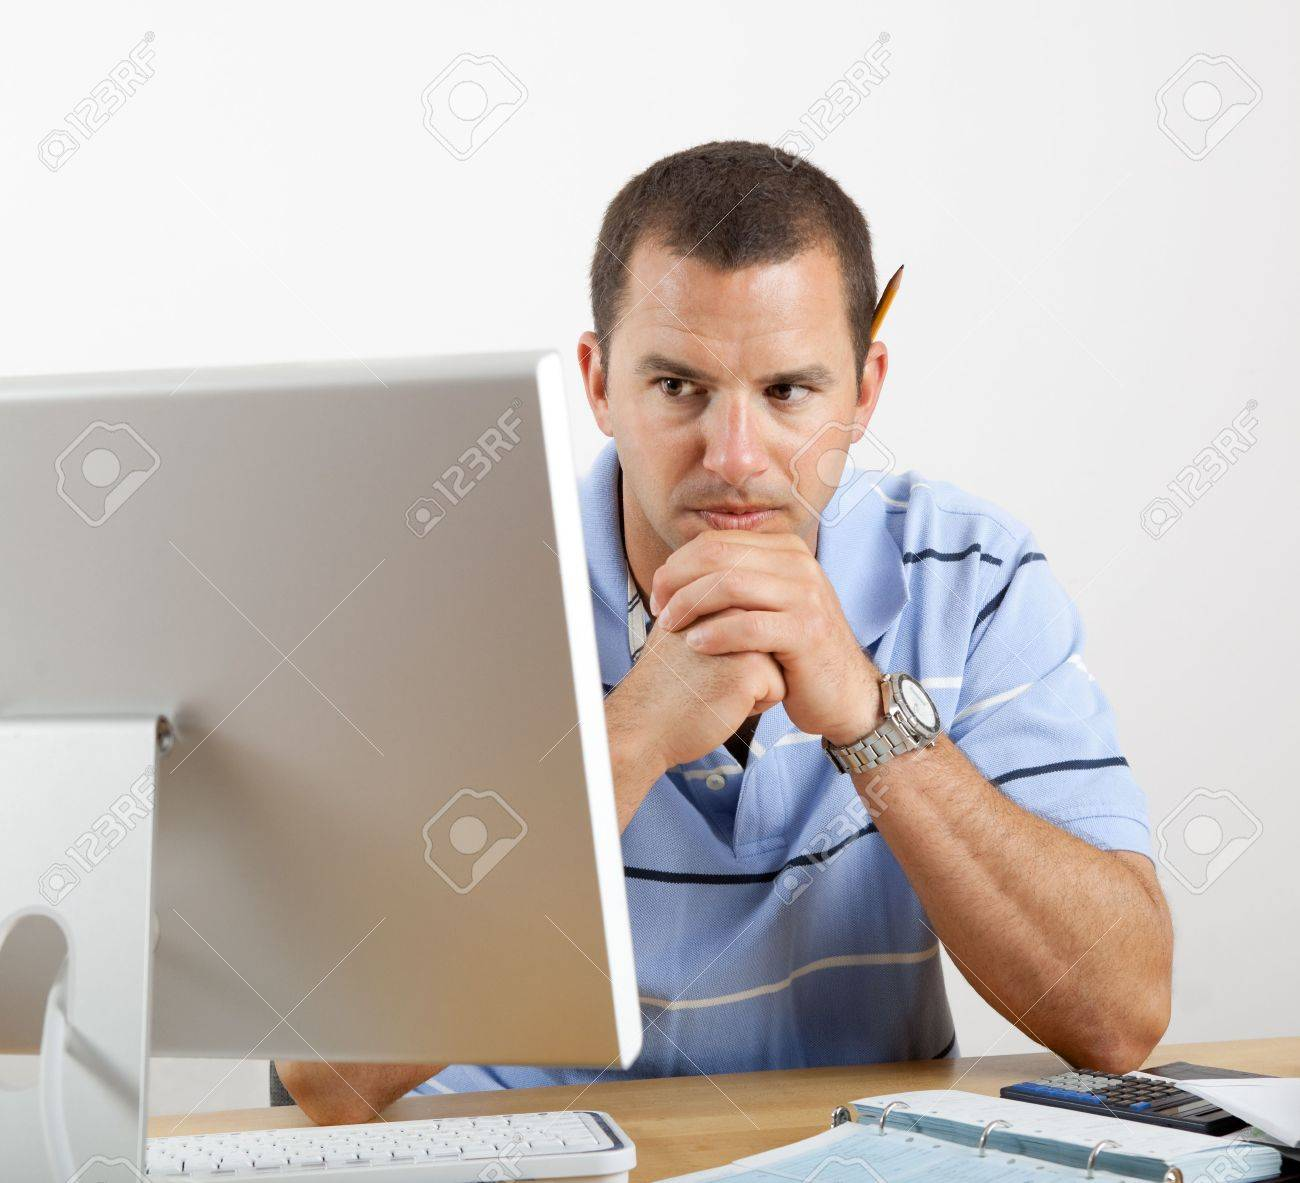 Young man at desk with computer, checkbook and calculator, worrying about paying the bills. Stock Photo - 7036614